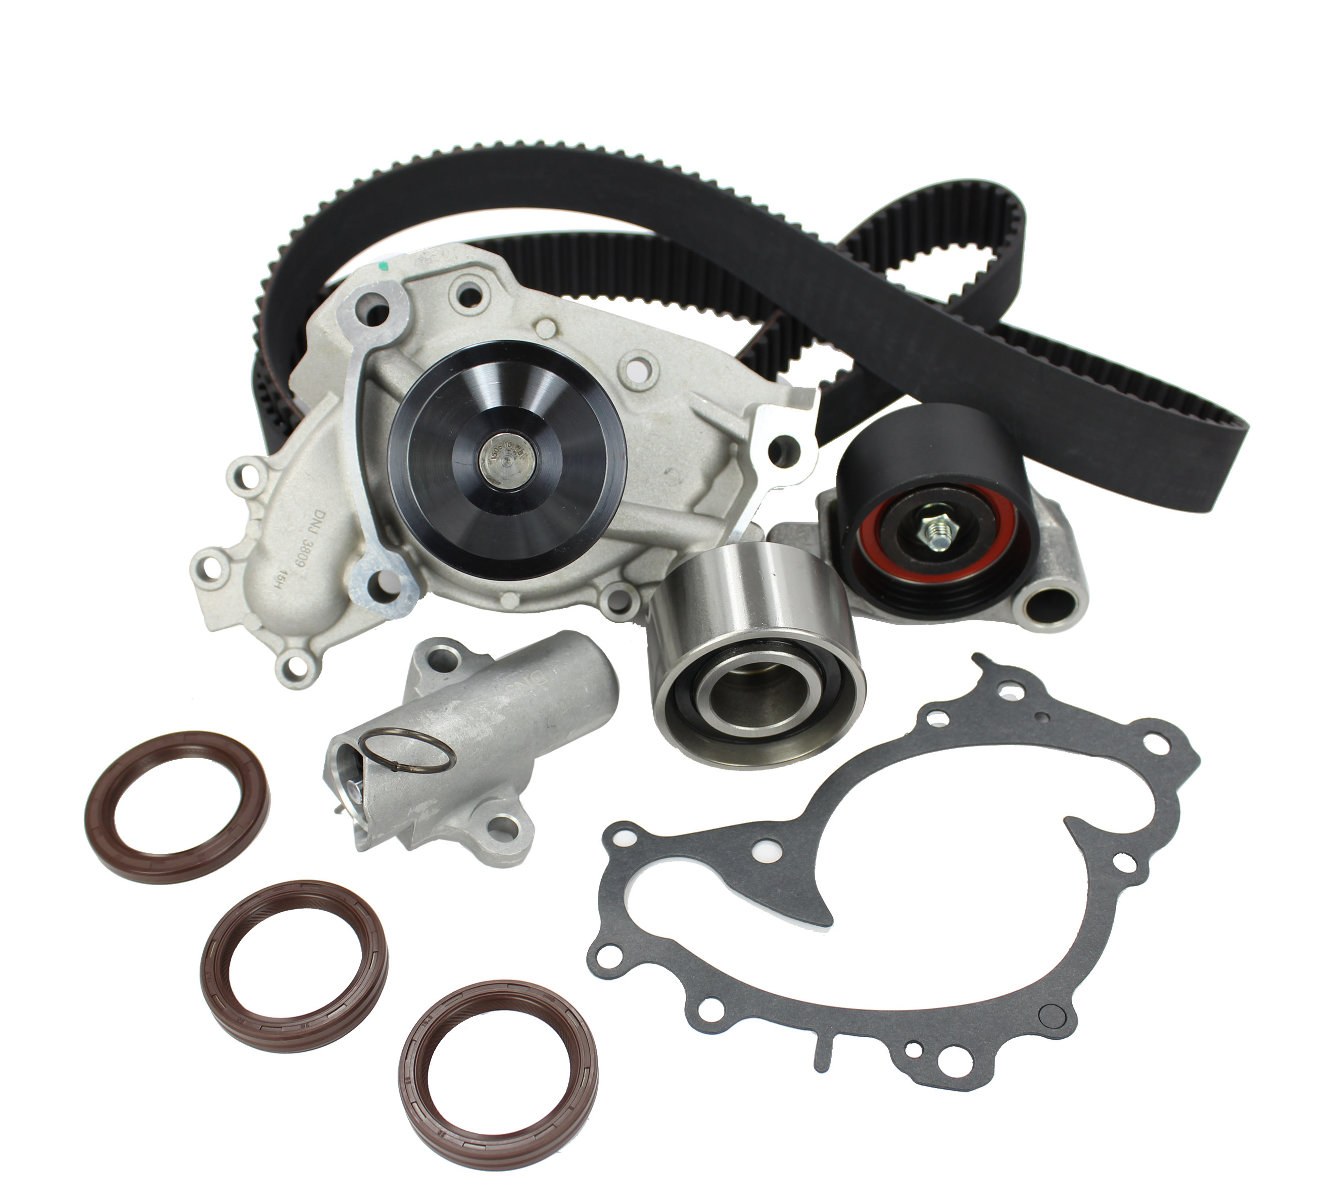 Toyota Sienna 2004 - 2006 Timing Belt Kit with Water Pump